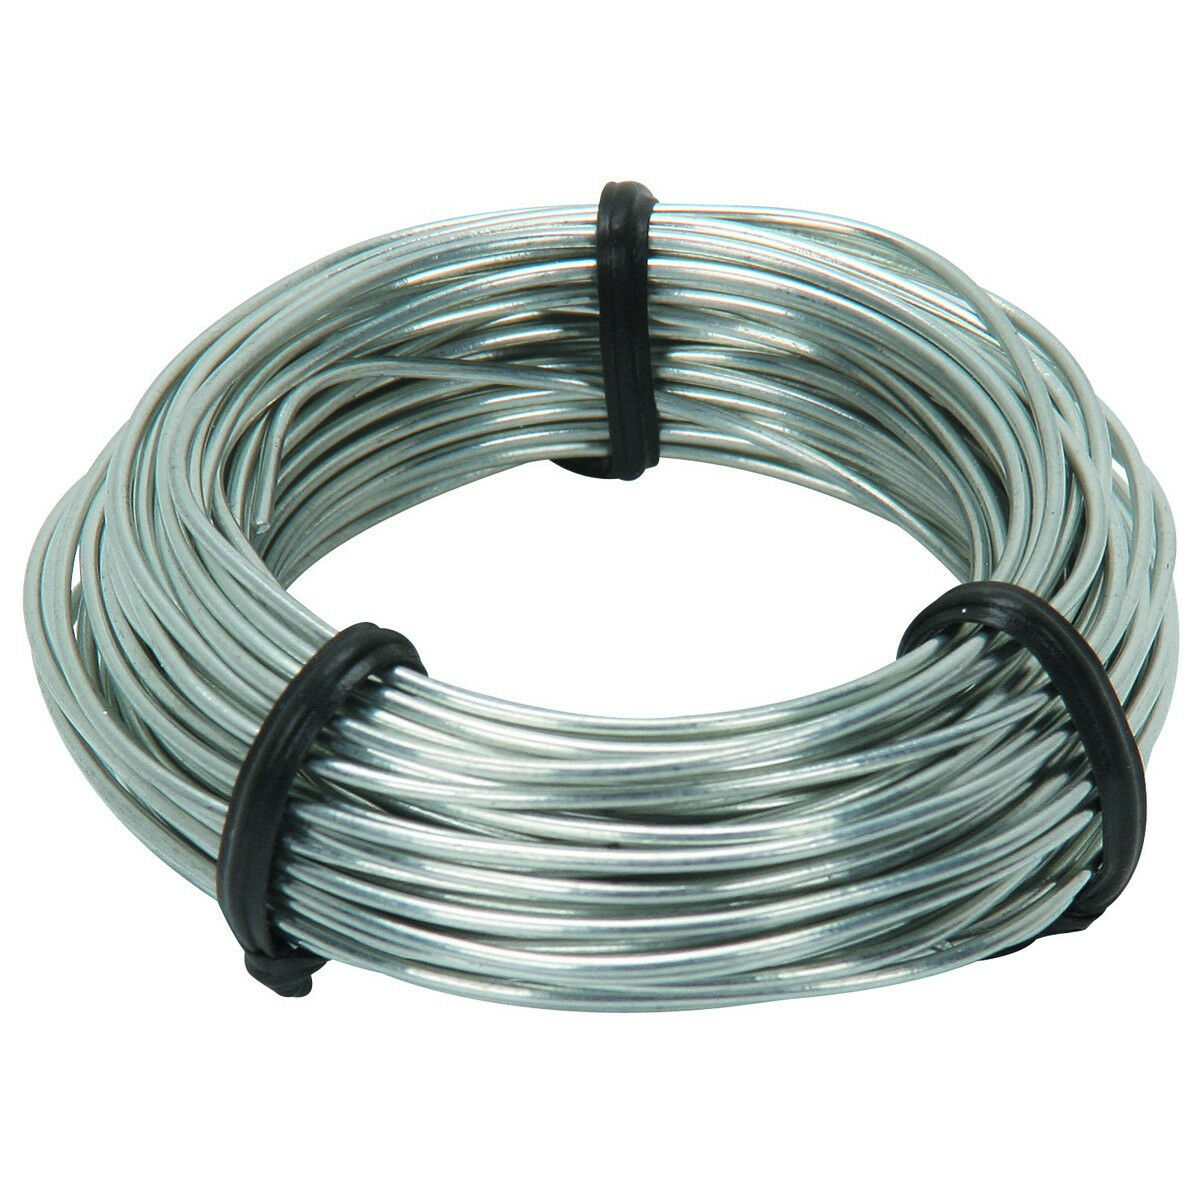 Baling Wire 25 FT Roll Mechanics Wire Craft Wire 20 GA Hundreds of ...